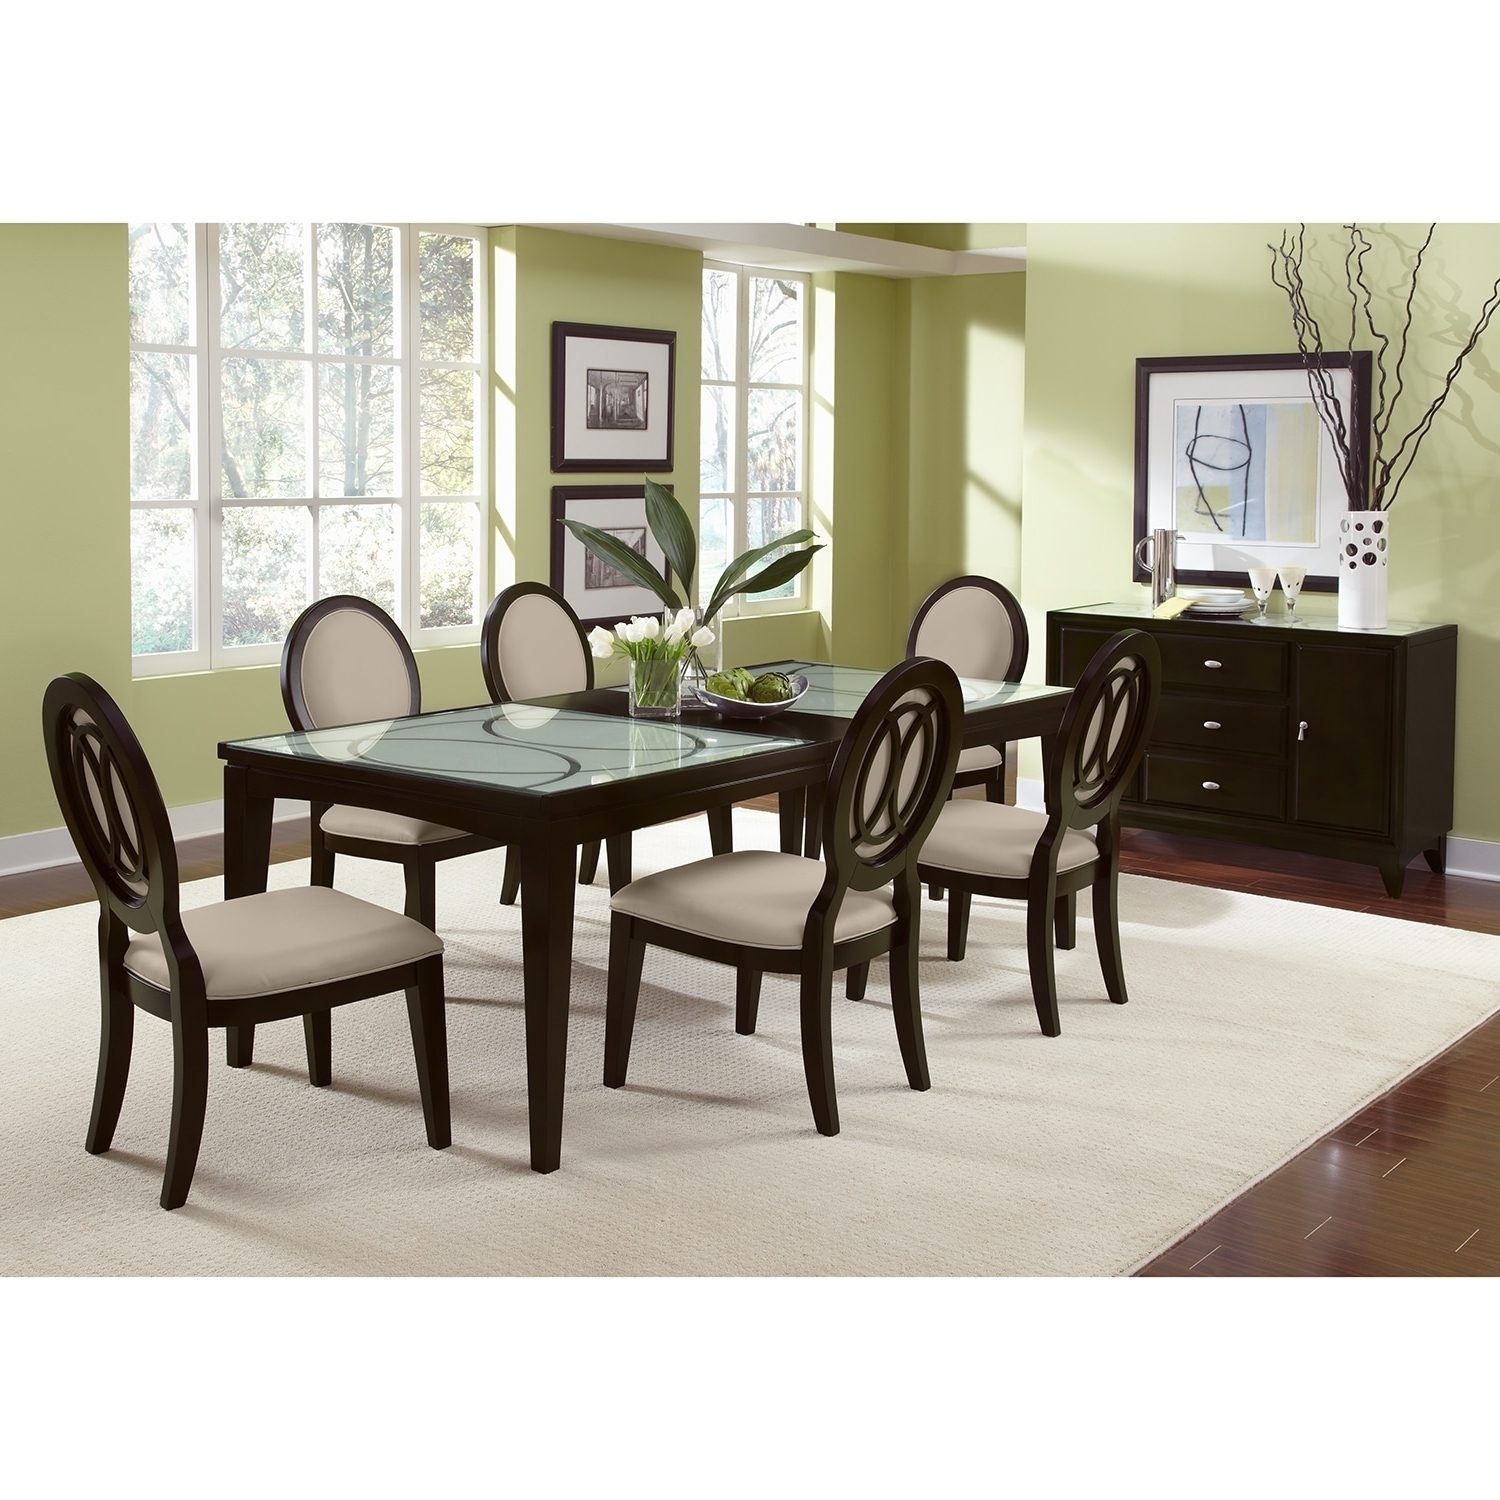 Well Liked Shop 7 Piece Dining Room Sets (View 22 of 25)